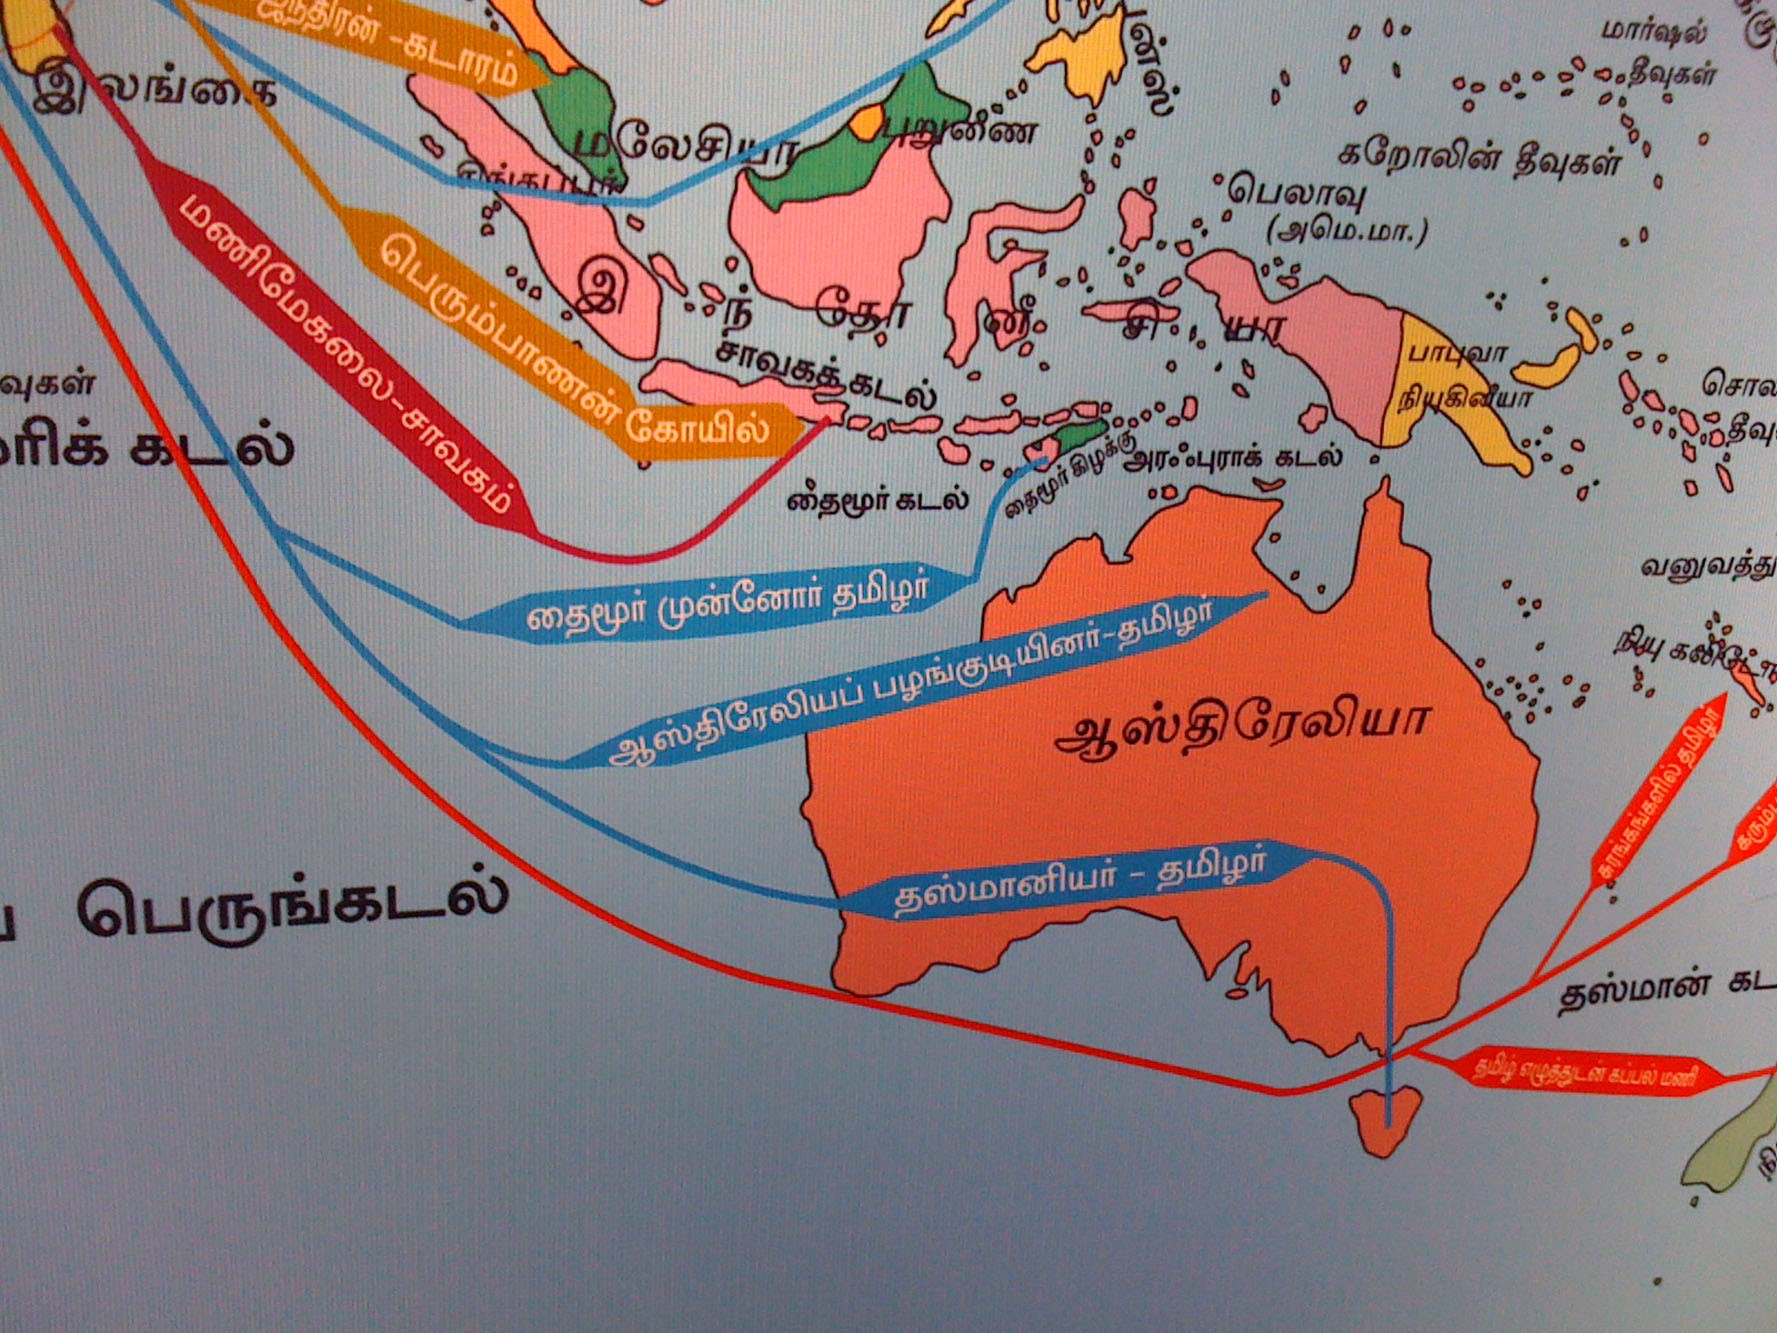 Influence of Tamil & its rulers to as far as Australia and Tasmania